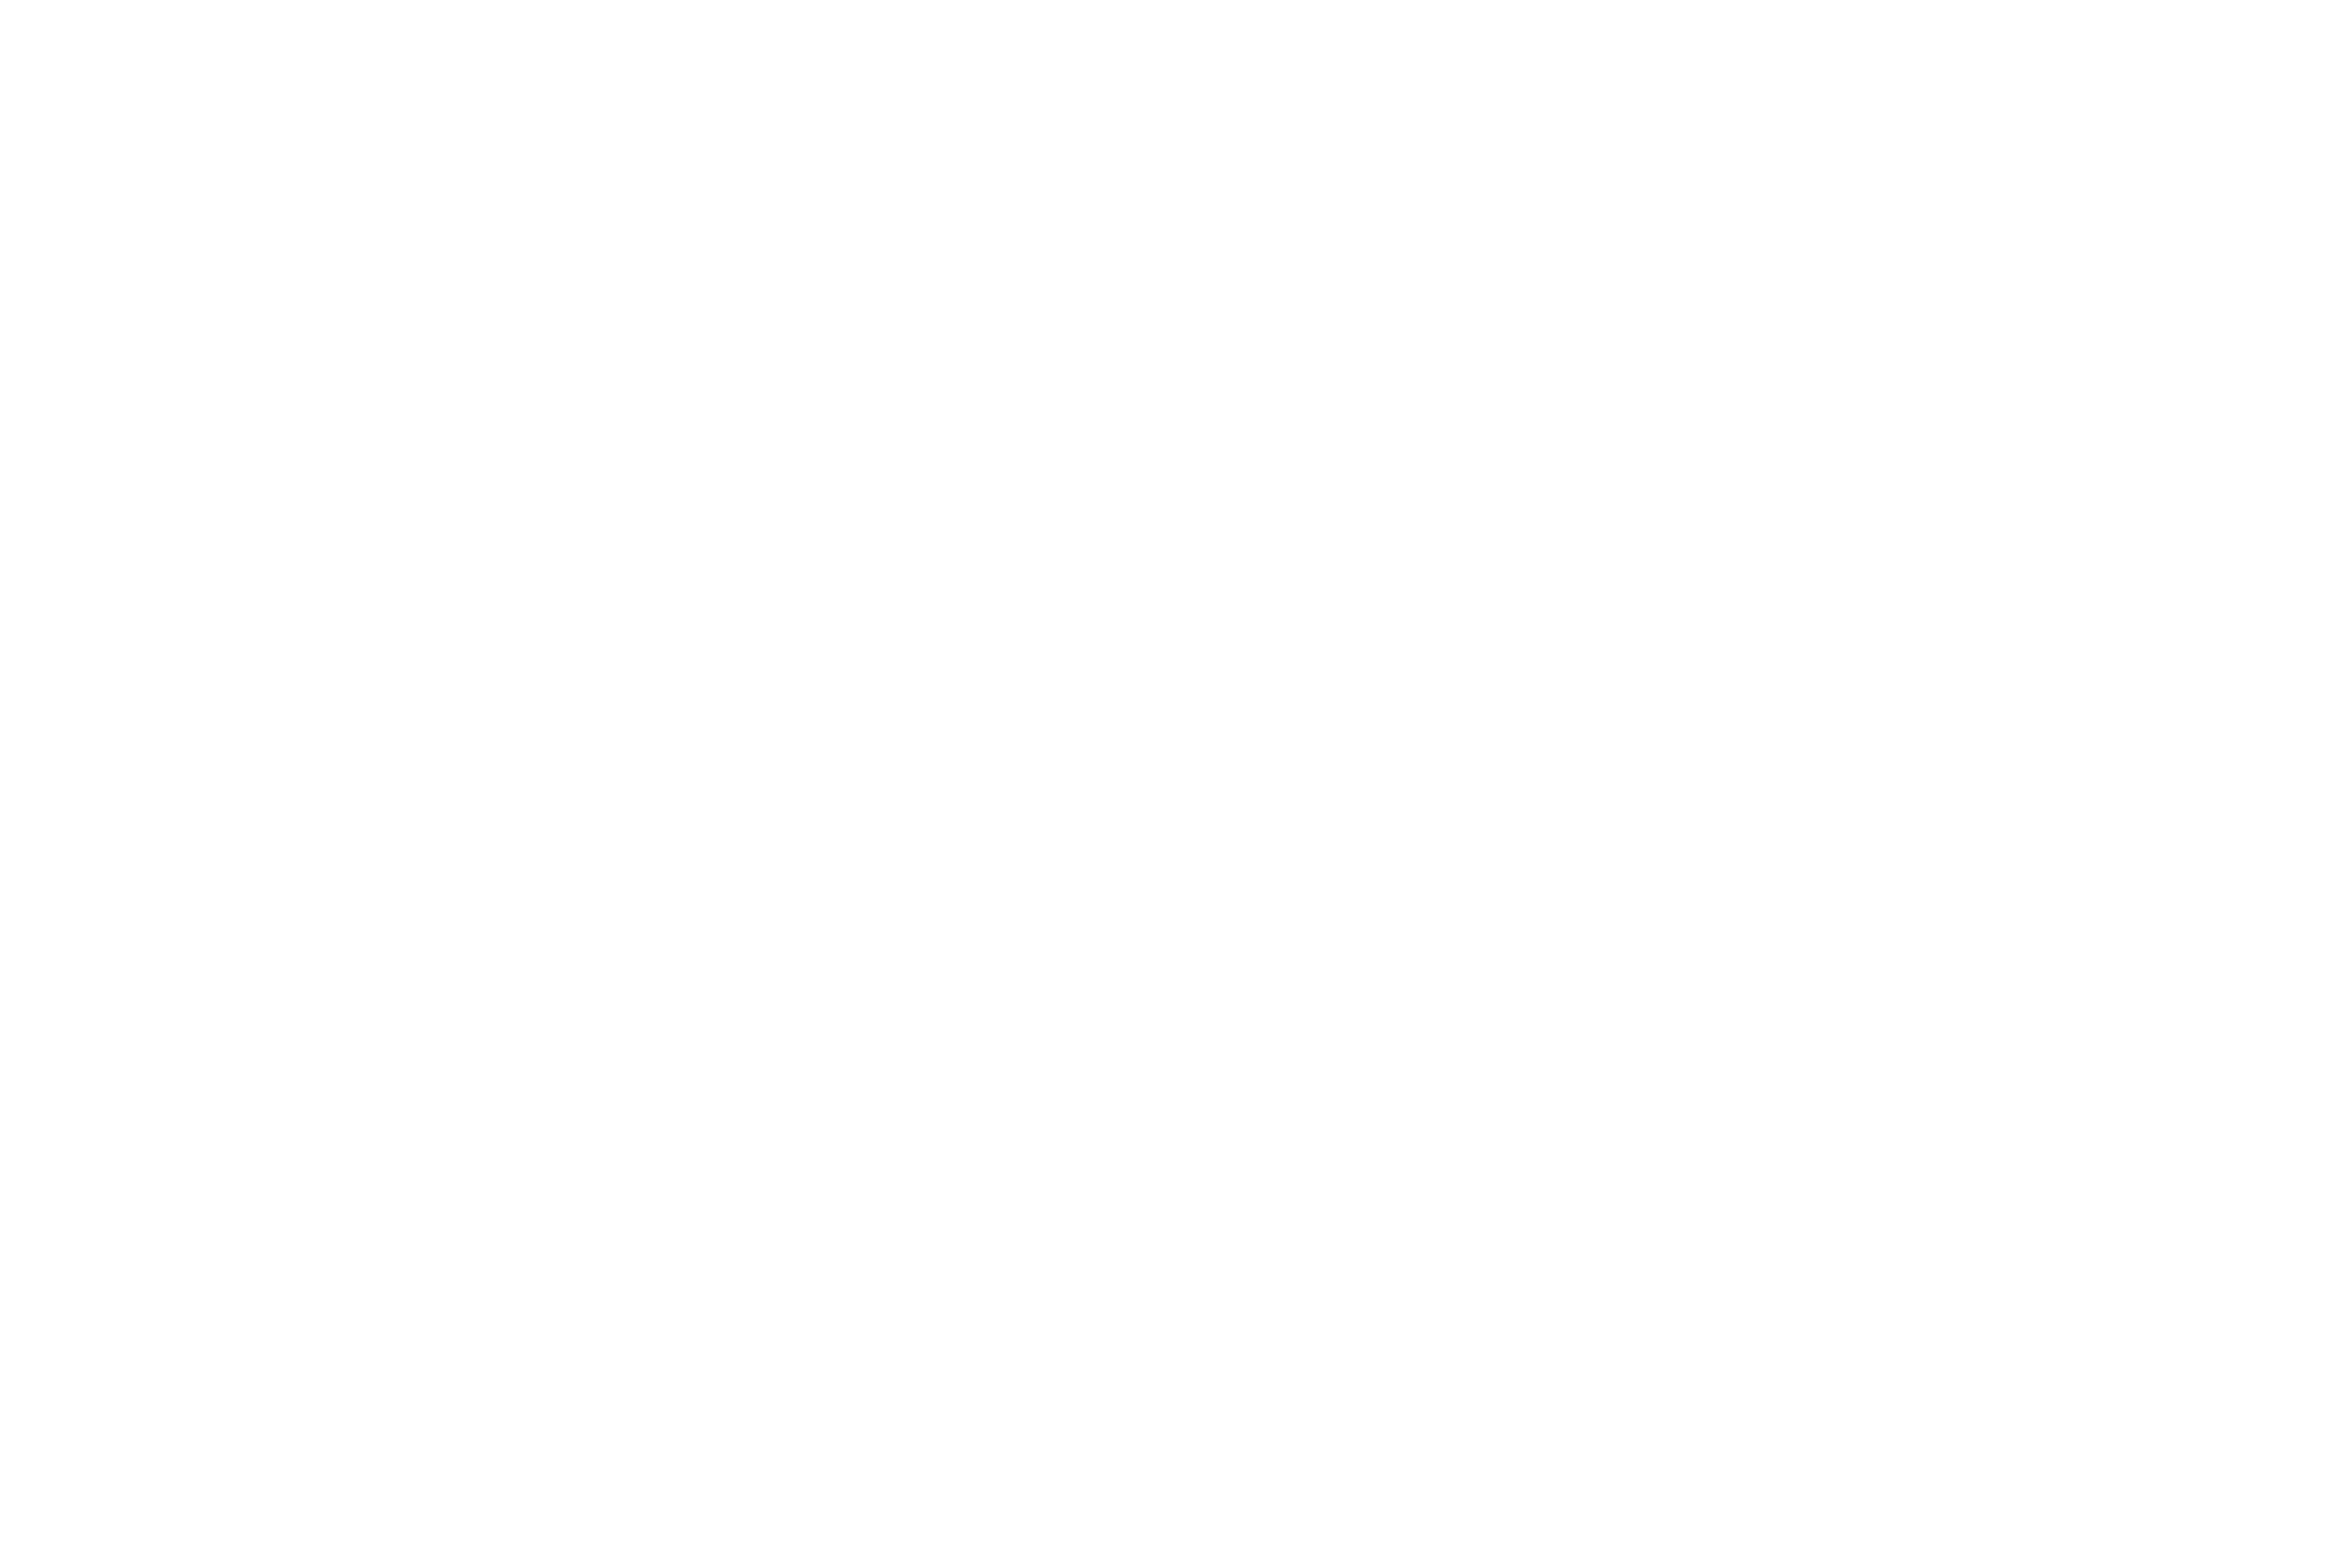 Gianni Buonsante Photography